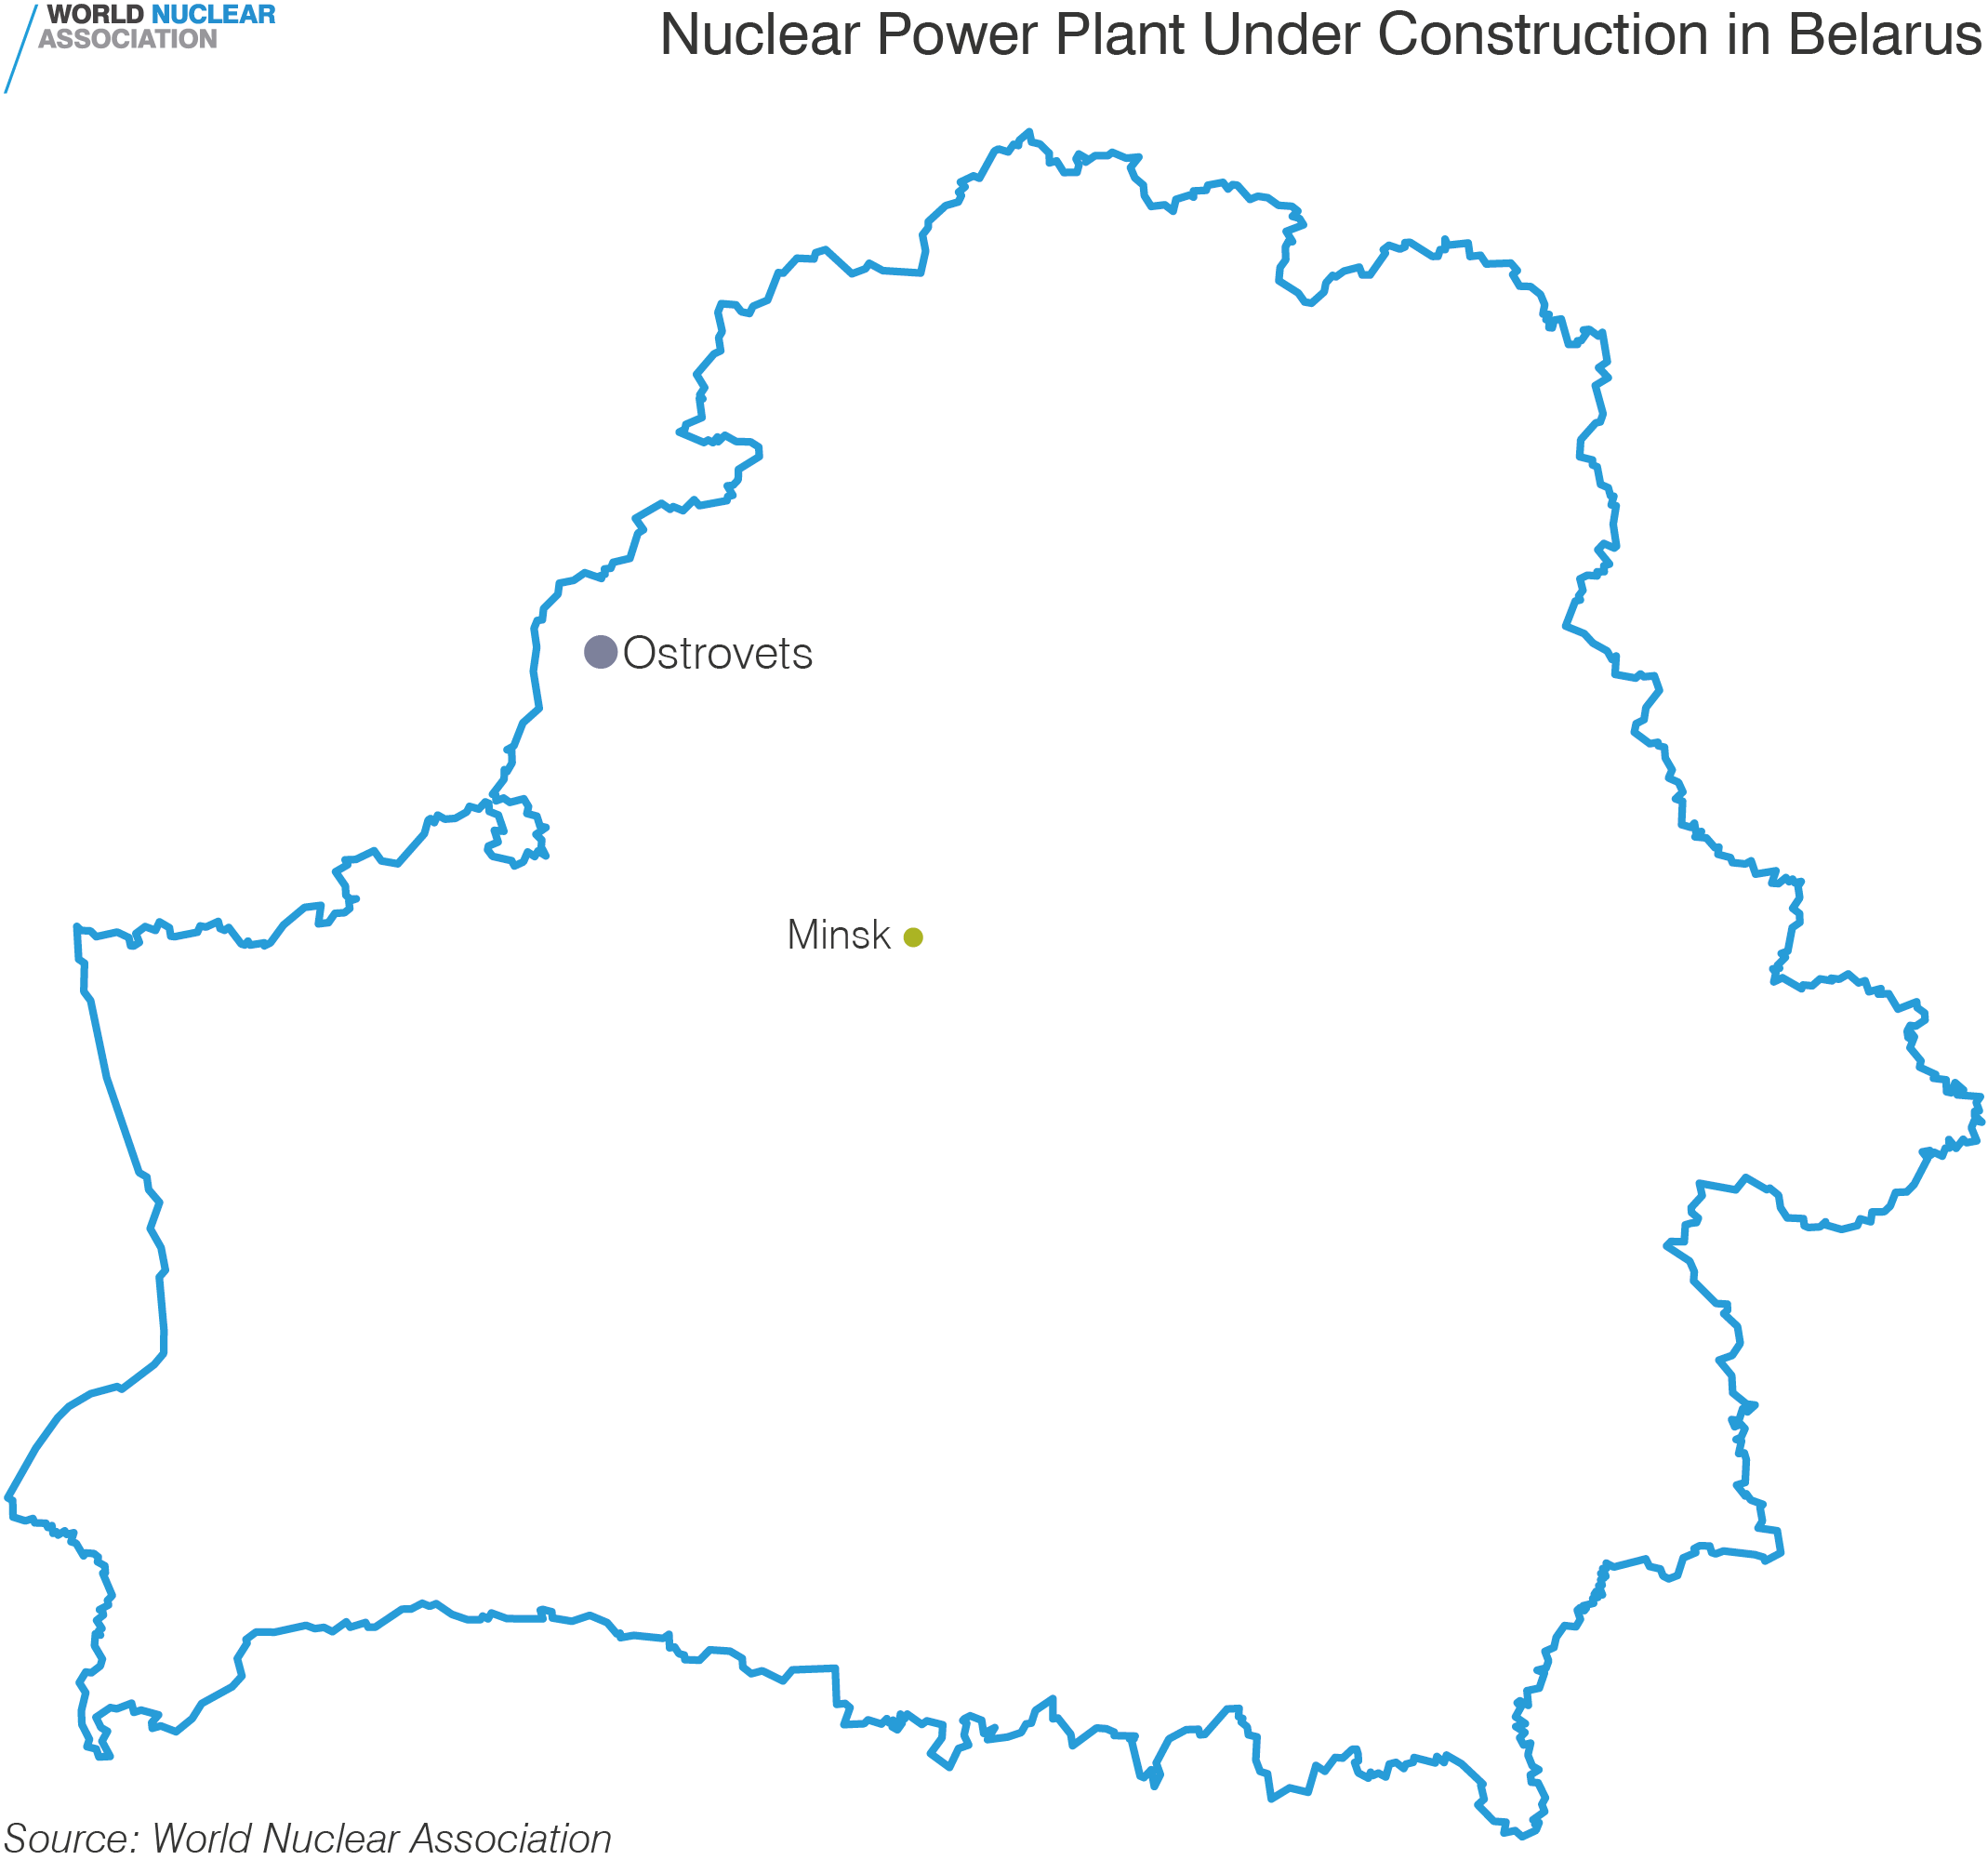 Nuclear Power Plant in Belarus